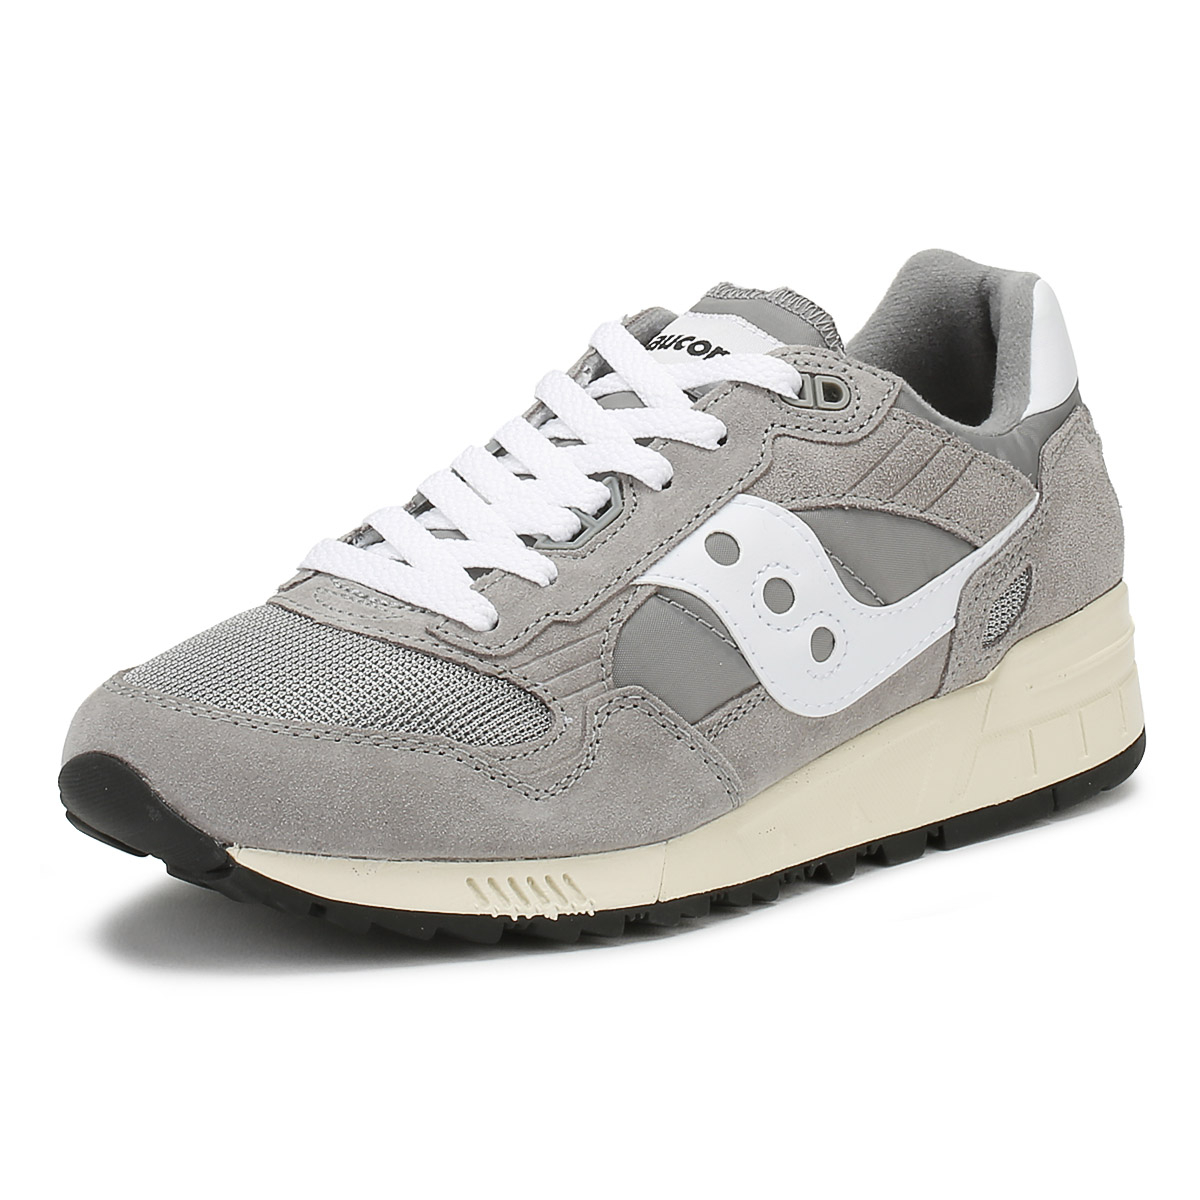 outlet store 62692 55575 Details about Saucony Mens Trainers Grey Shadow 5000 Vintage Sport Casual  Shoes